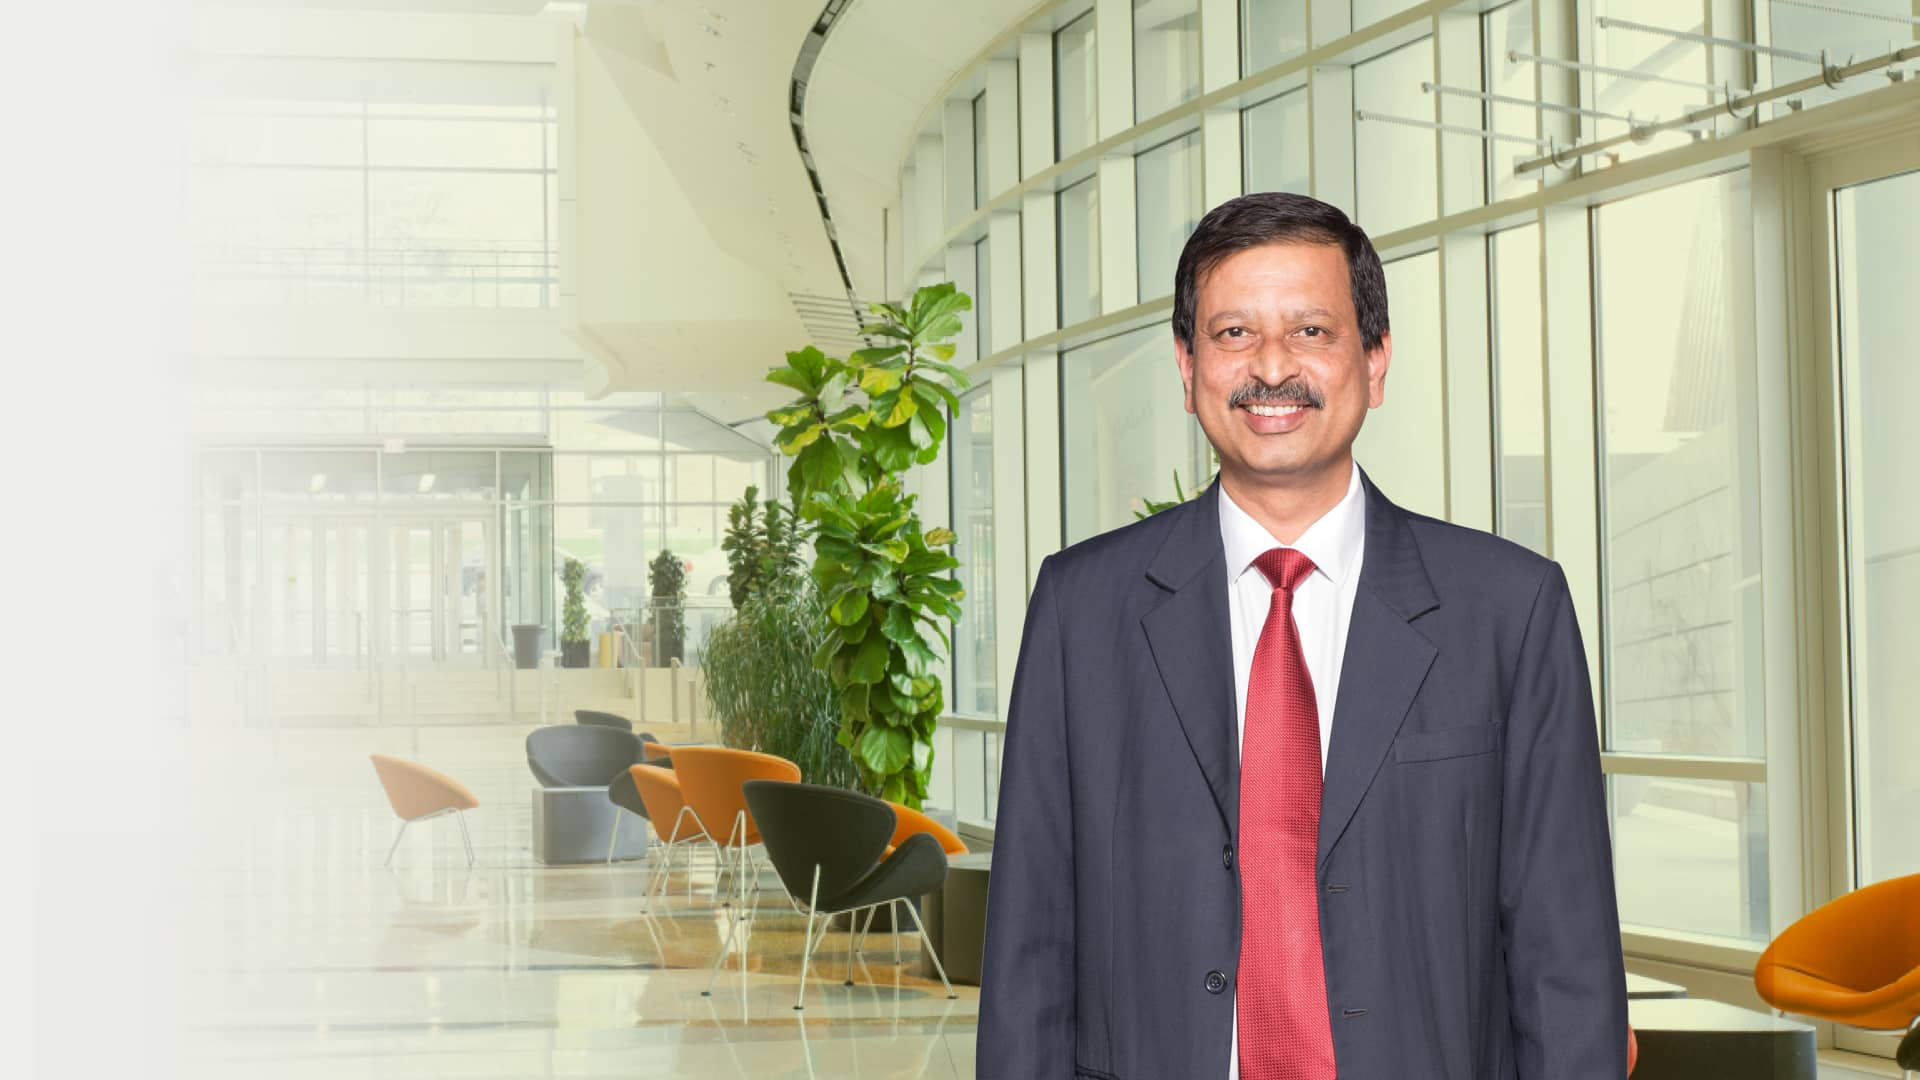 Ajoyendra Mukherjee - EVP and Head, Global Human Resources, TCS